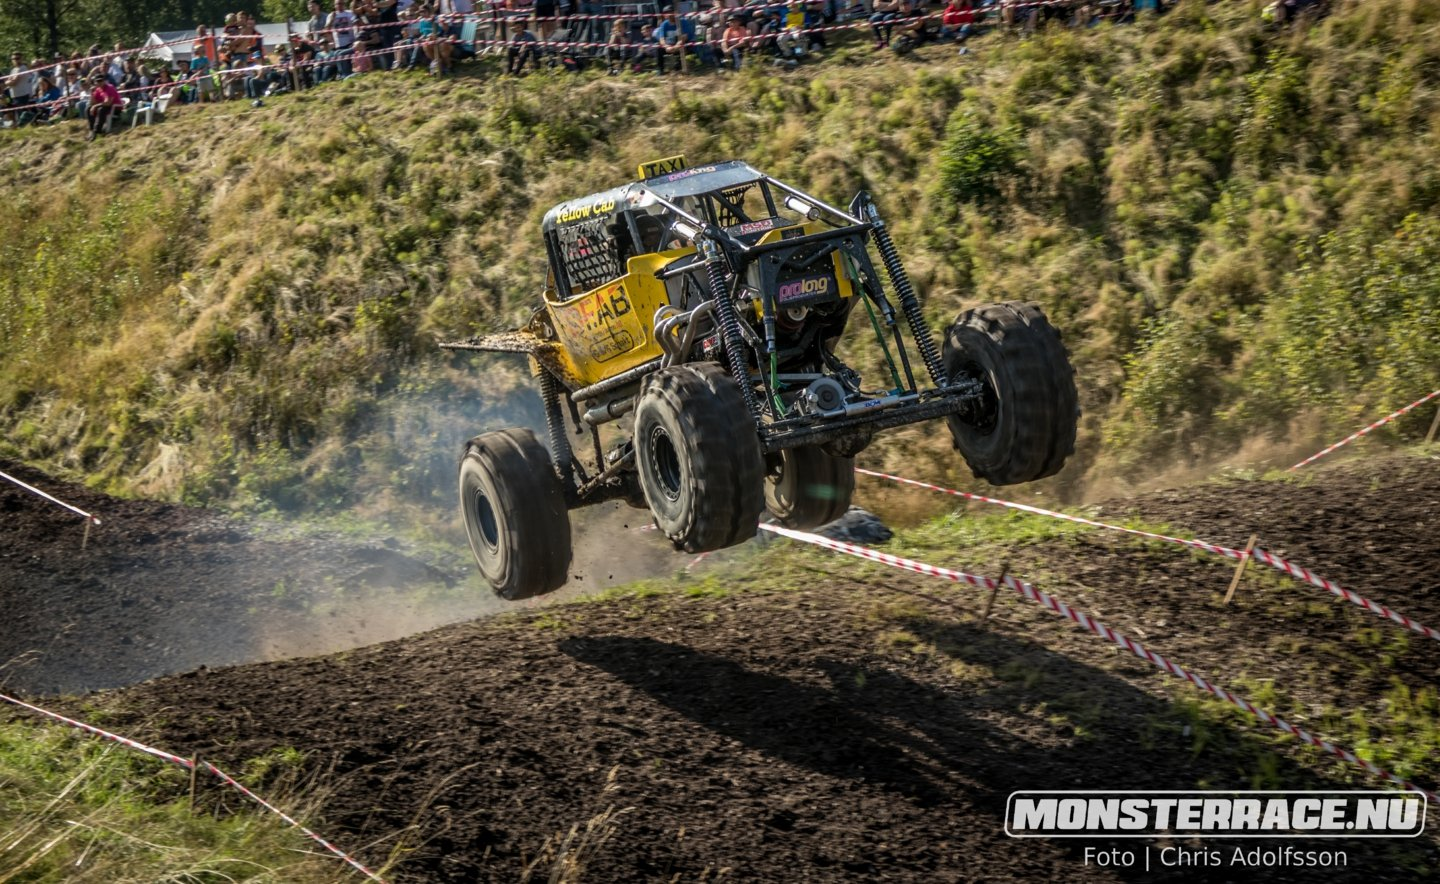 Monsterrace Ed dag 1 (223)